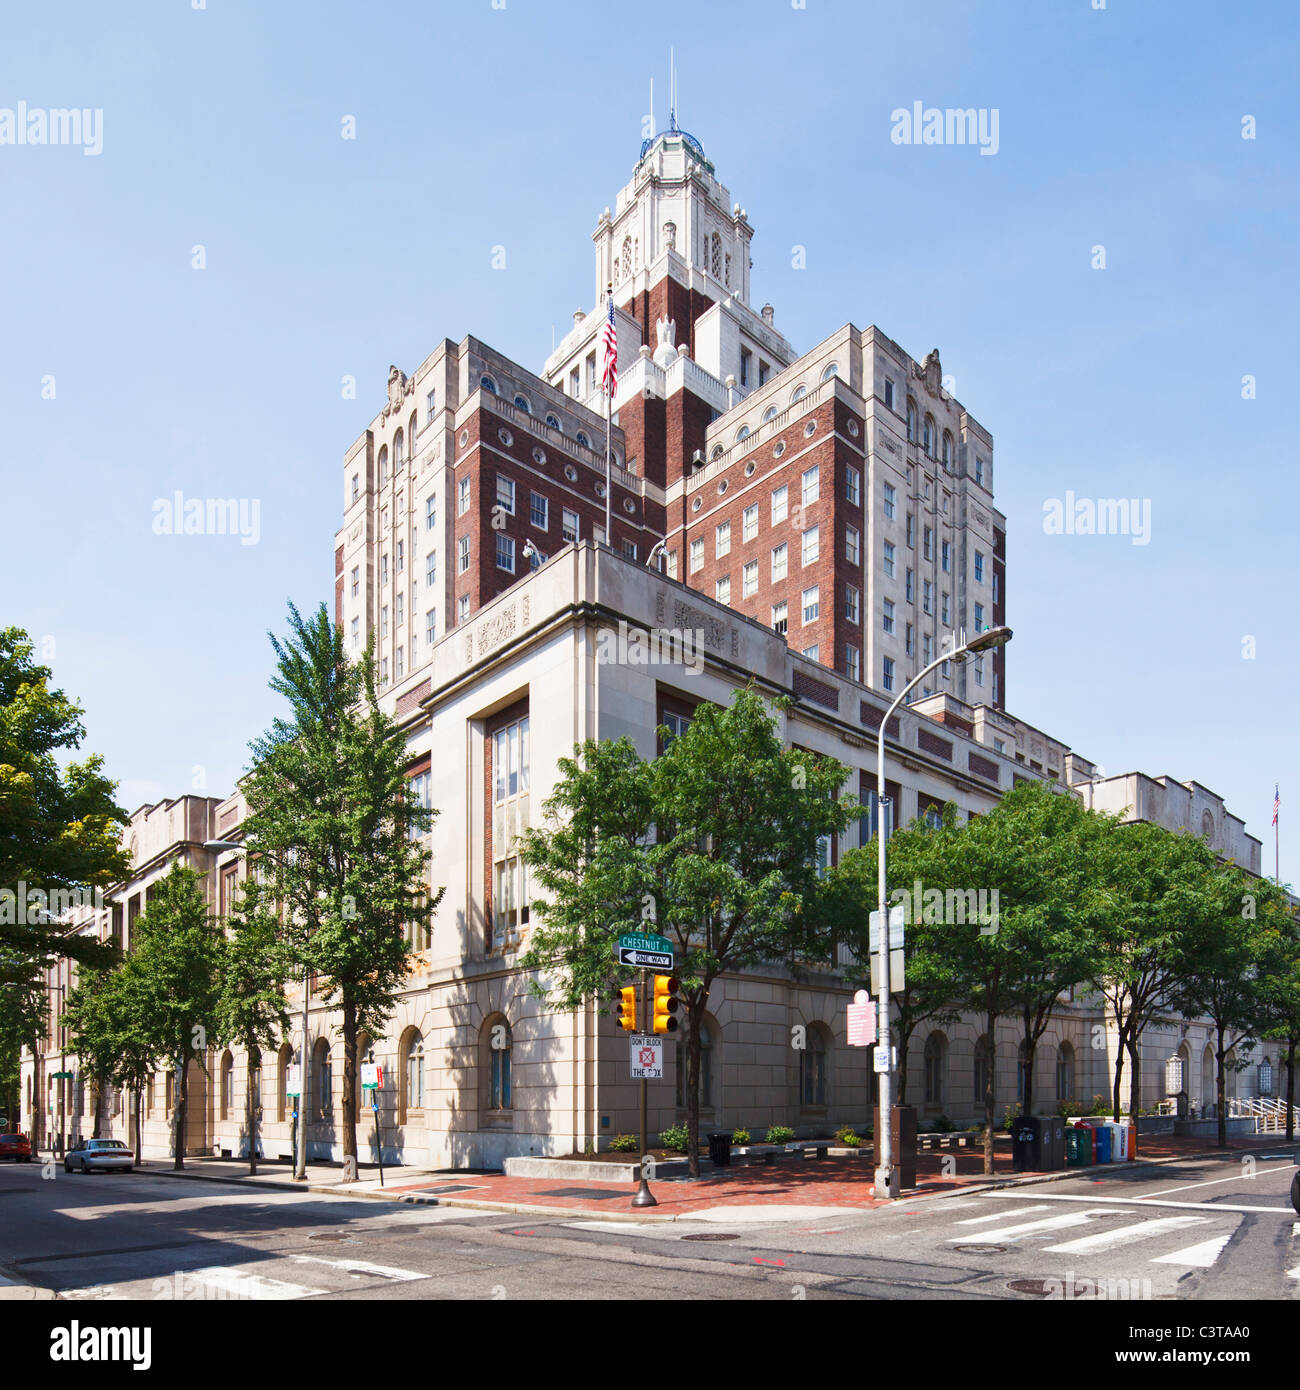 Federal Bureau of Prisons, Philadelphia - Stock Image